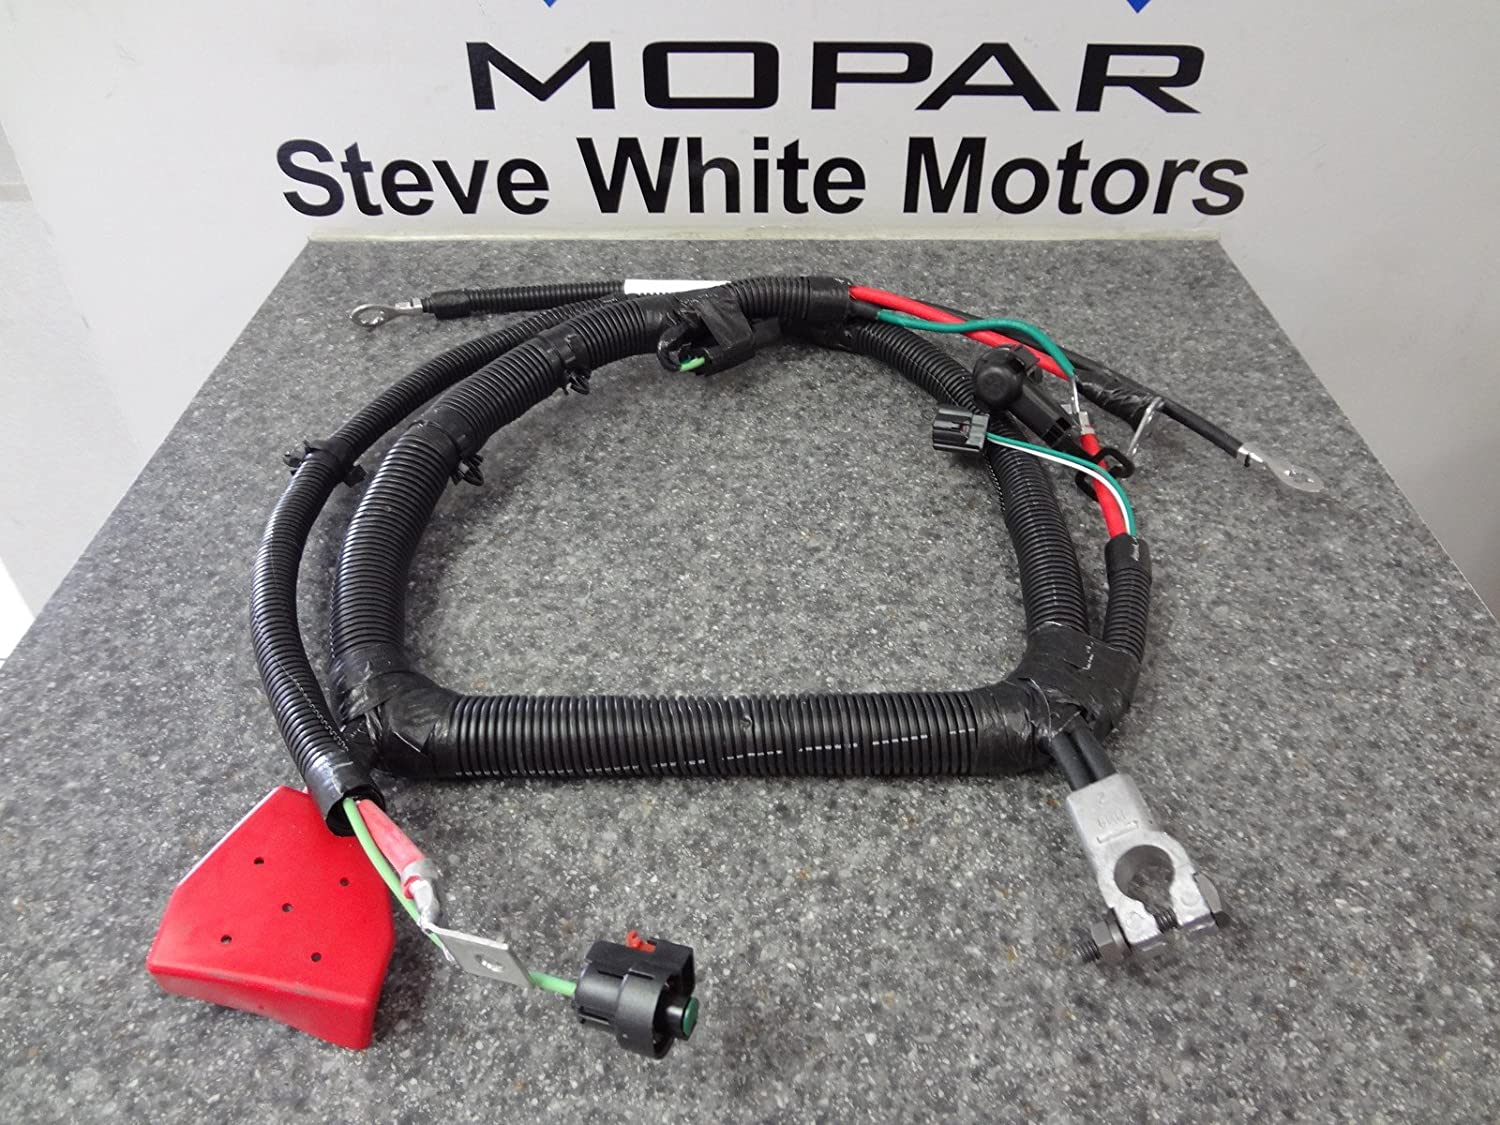 81ME6KtdwrL._SL1500_ amazon com 1999 2000 jeep grand cherokee battery cable wiring battery wiring harness at aneh.co